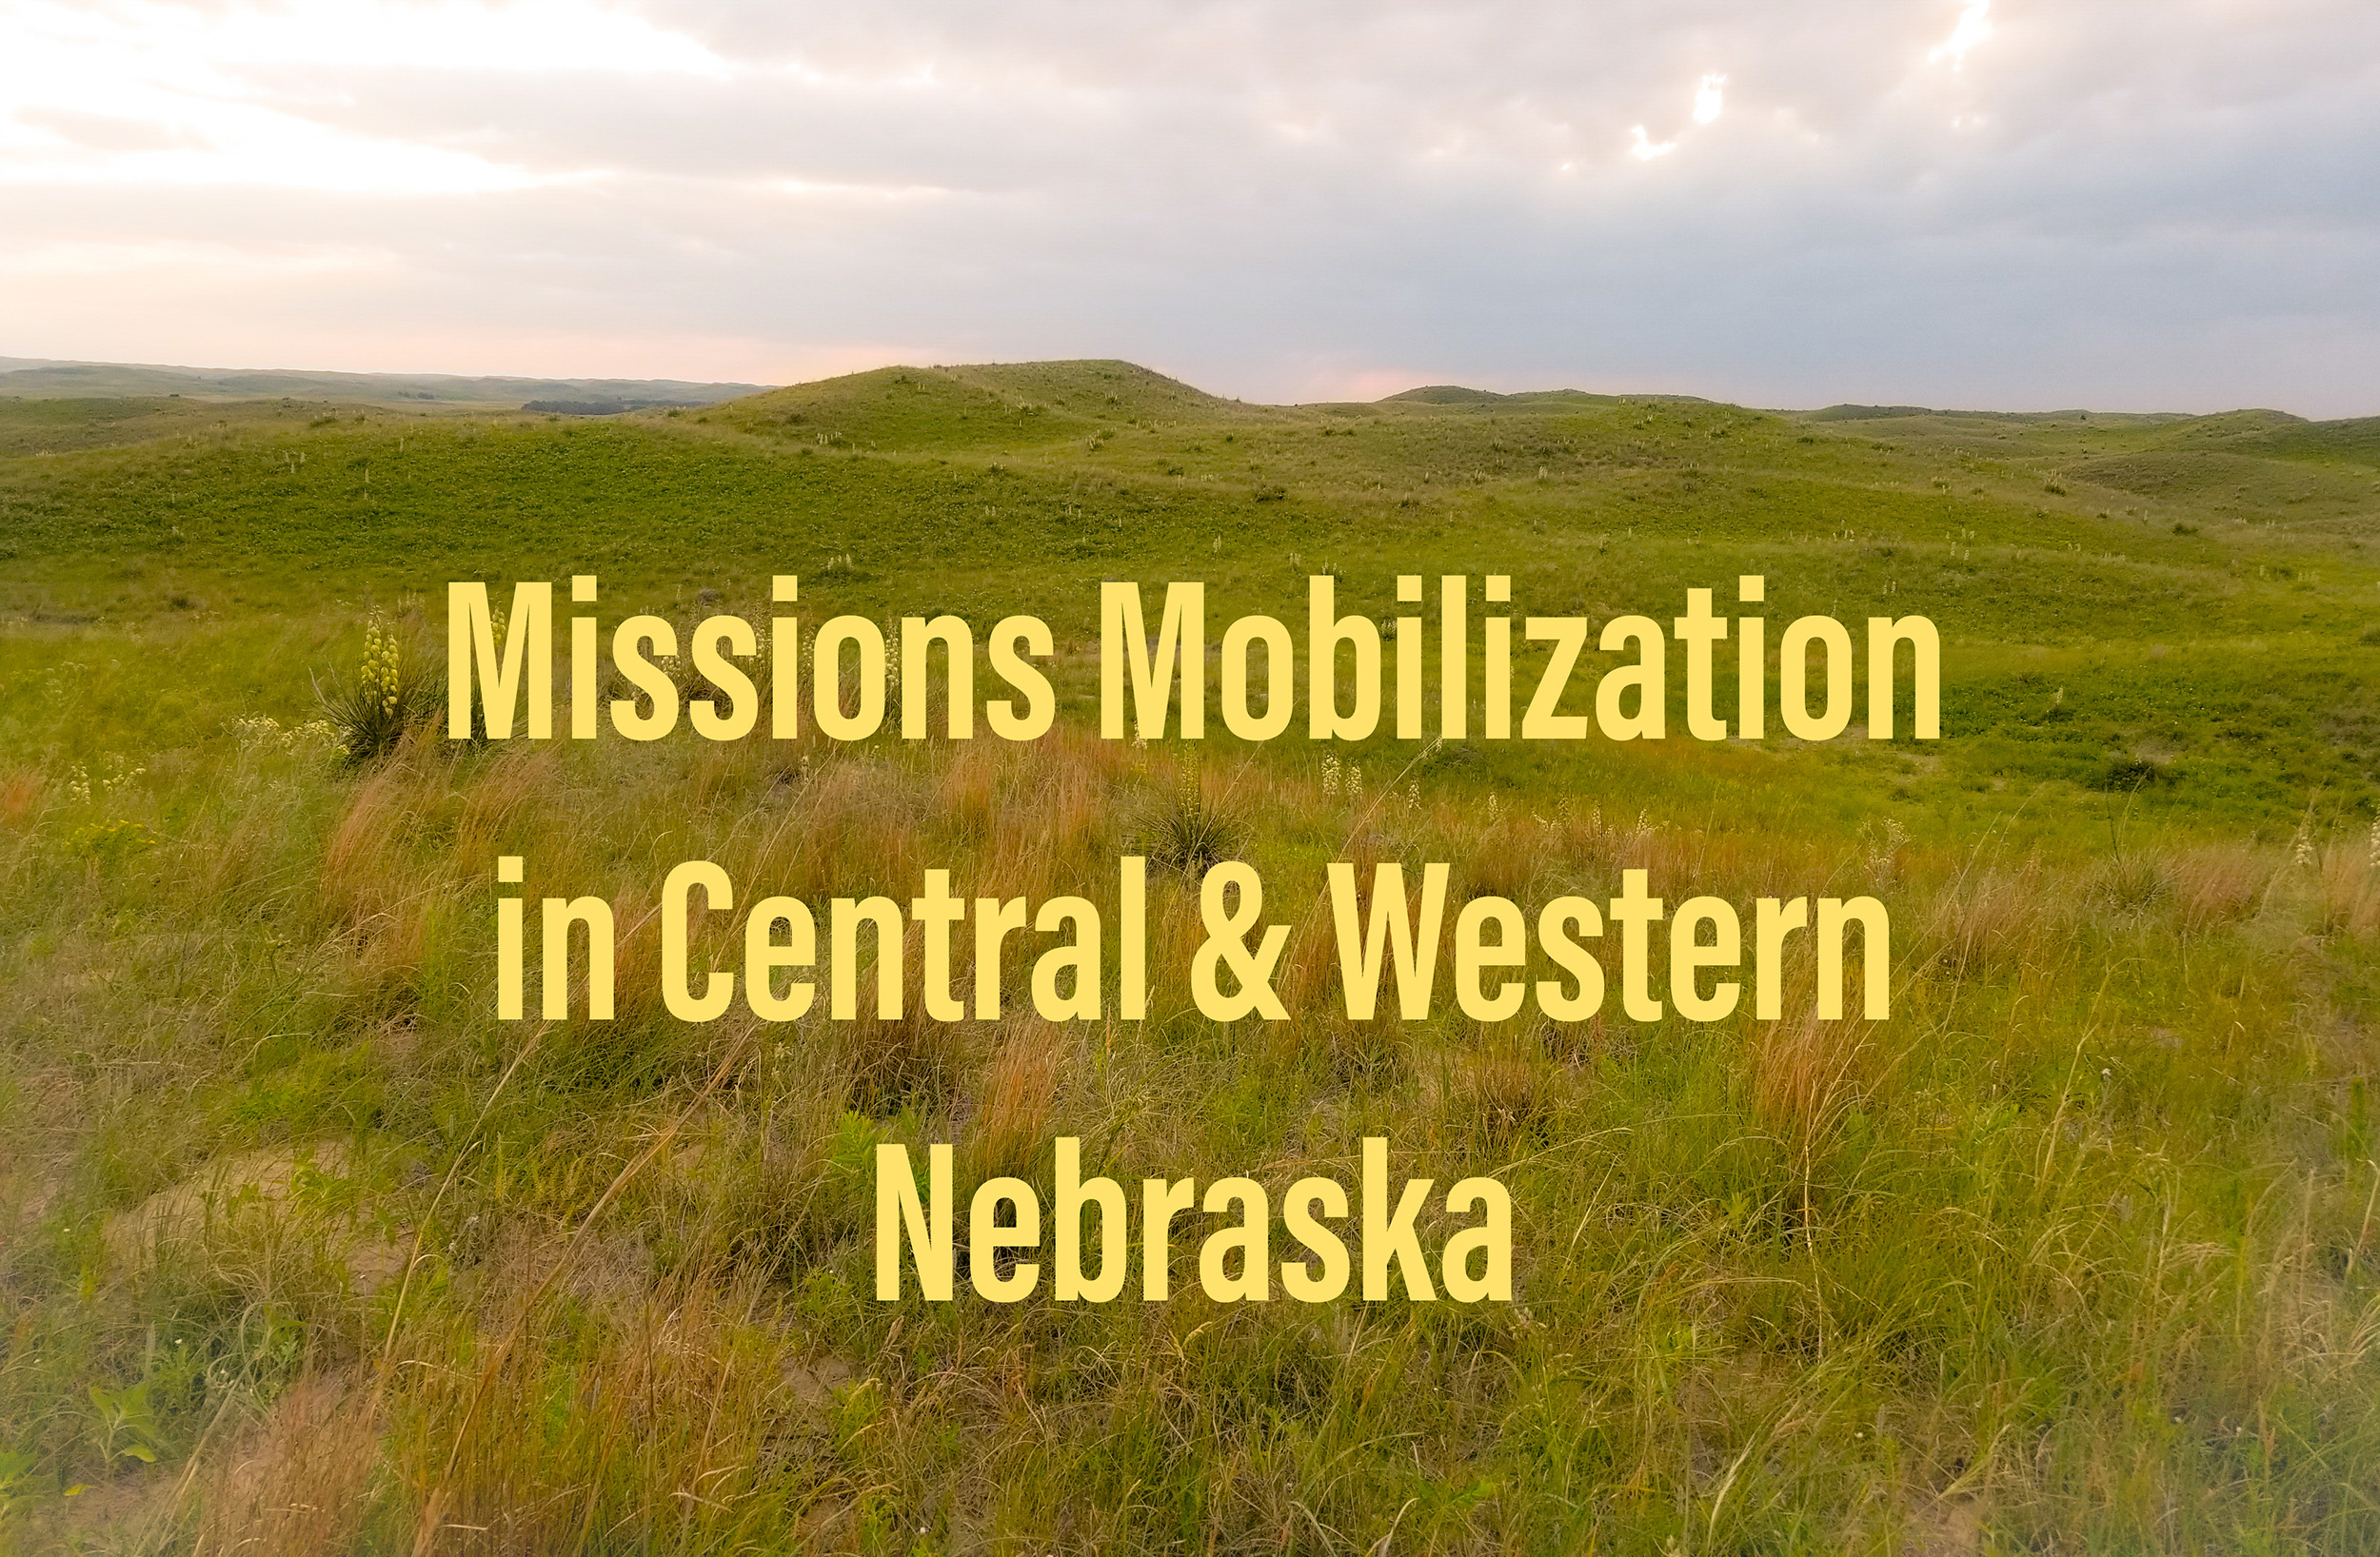 Churches and individuals are needed to help in Nebraska